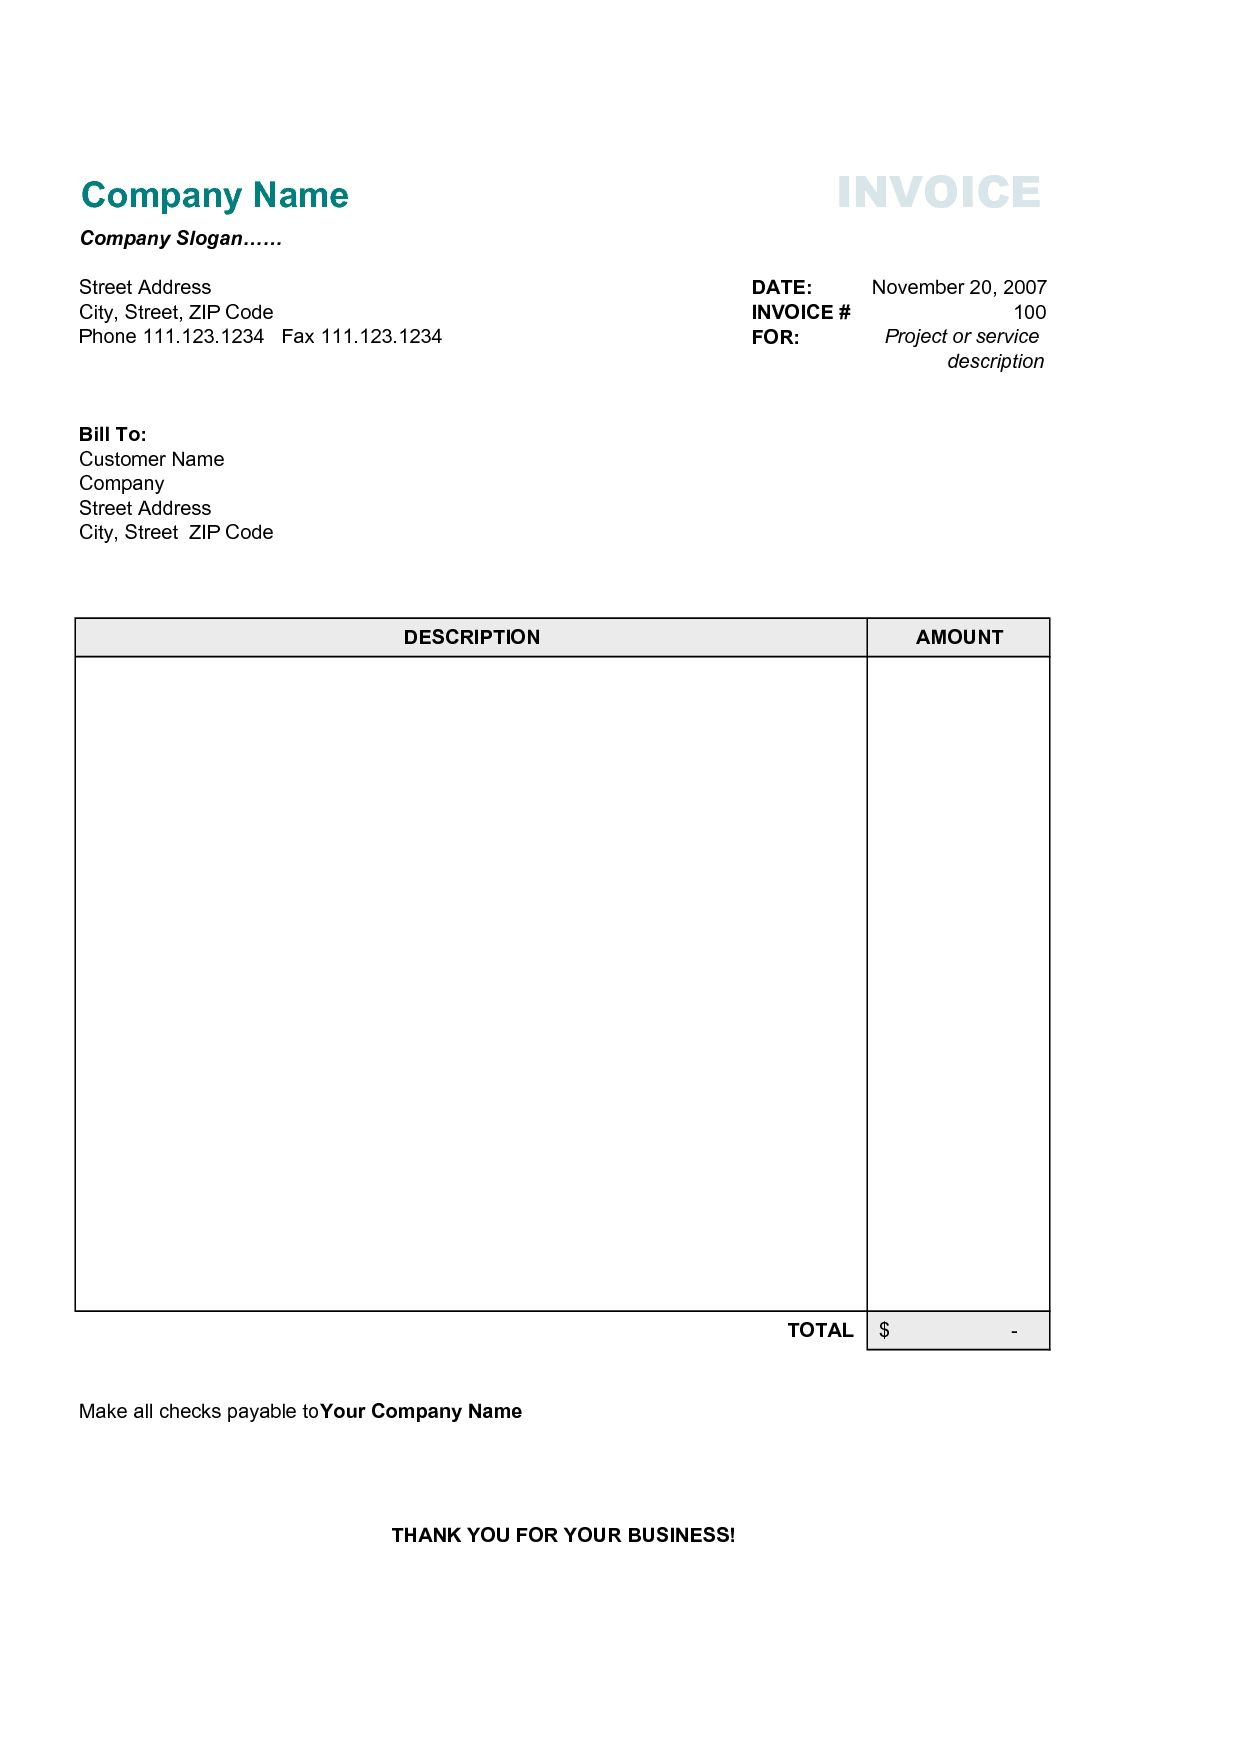 17 best photos of printable commercial invoice sample business, Invoice templates